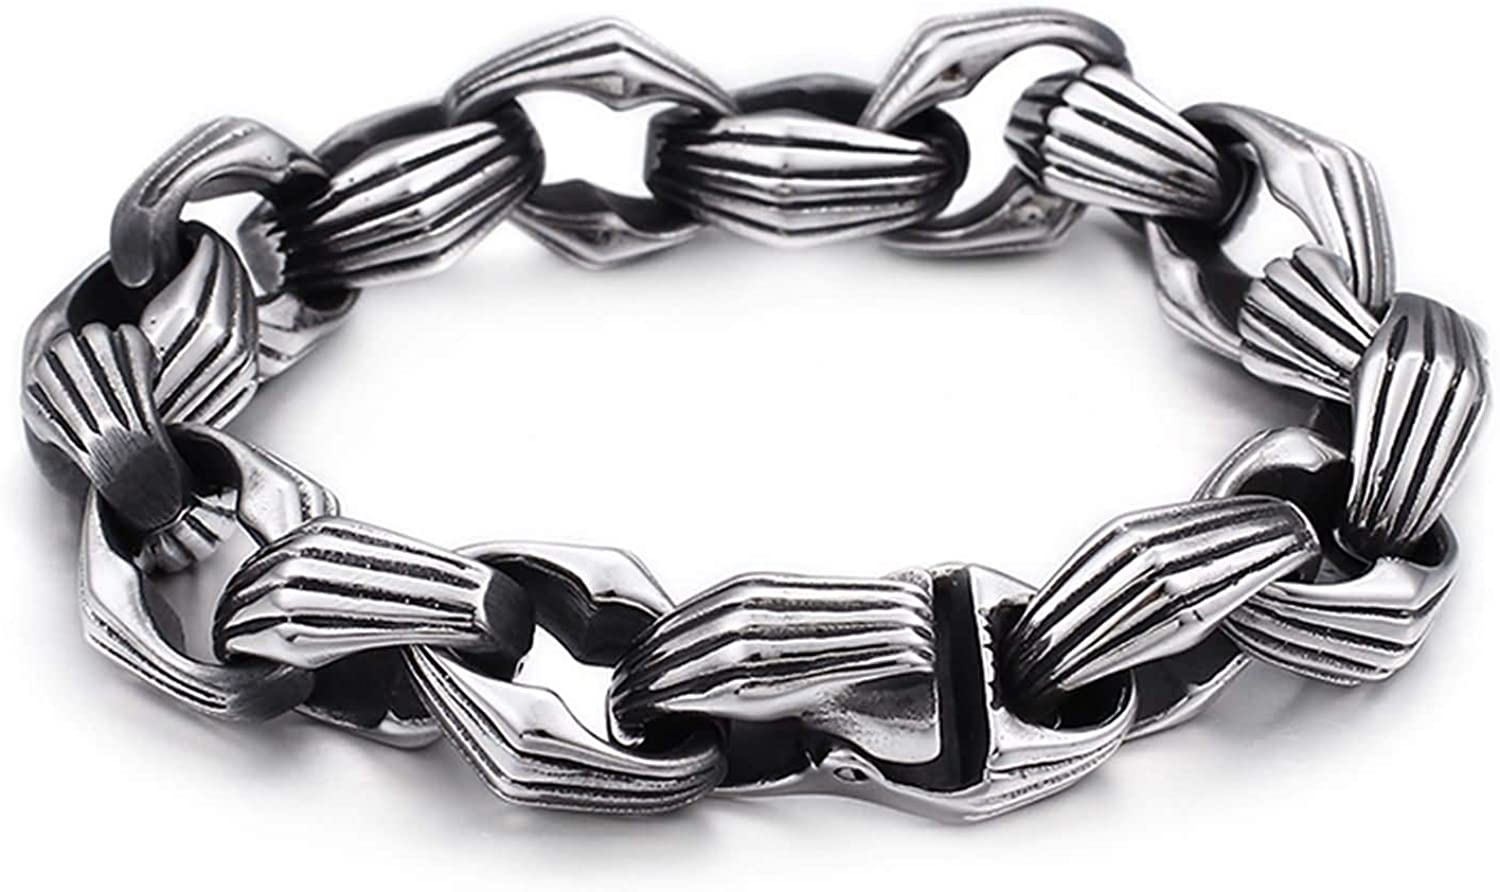 Daesar Men Bracelet Stainless Genuine Free Shipping Silver Chain Dealing full price reduction Steel Charms